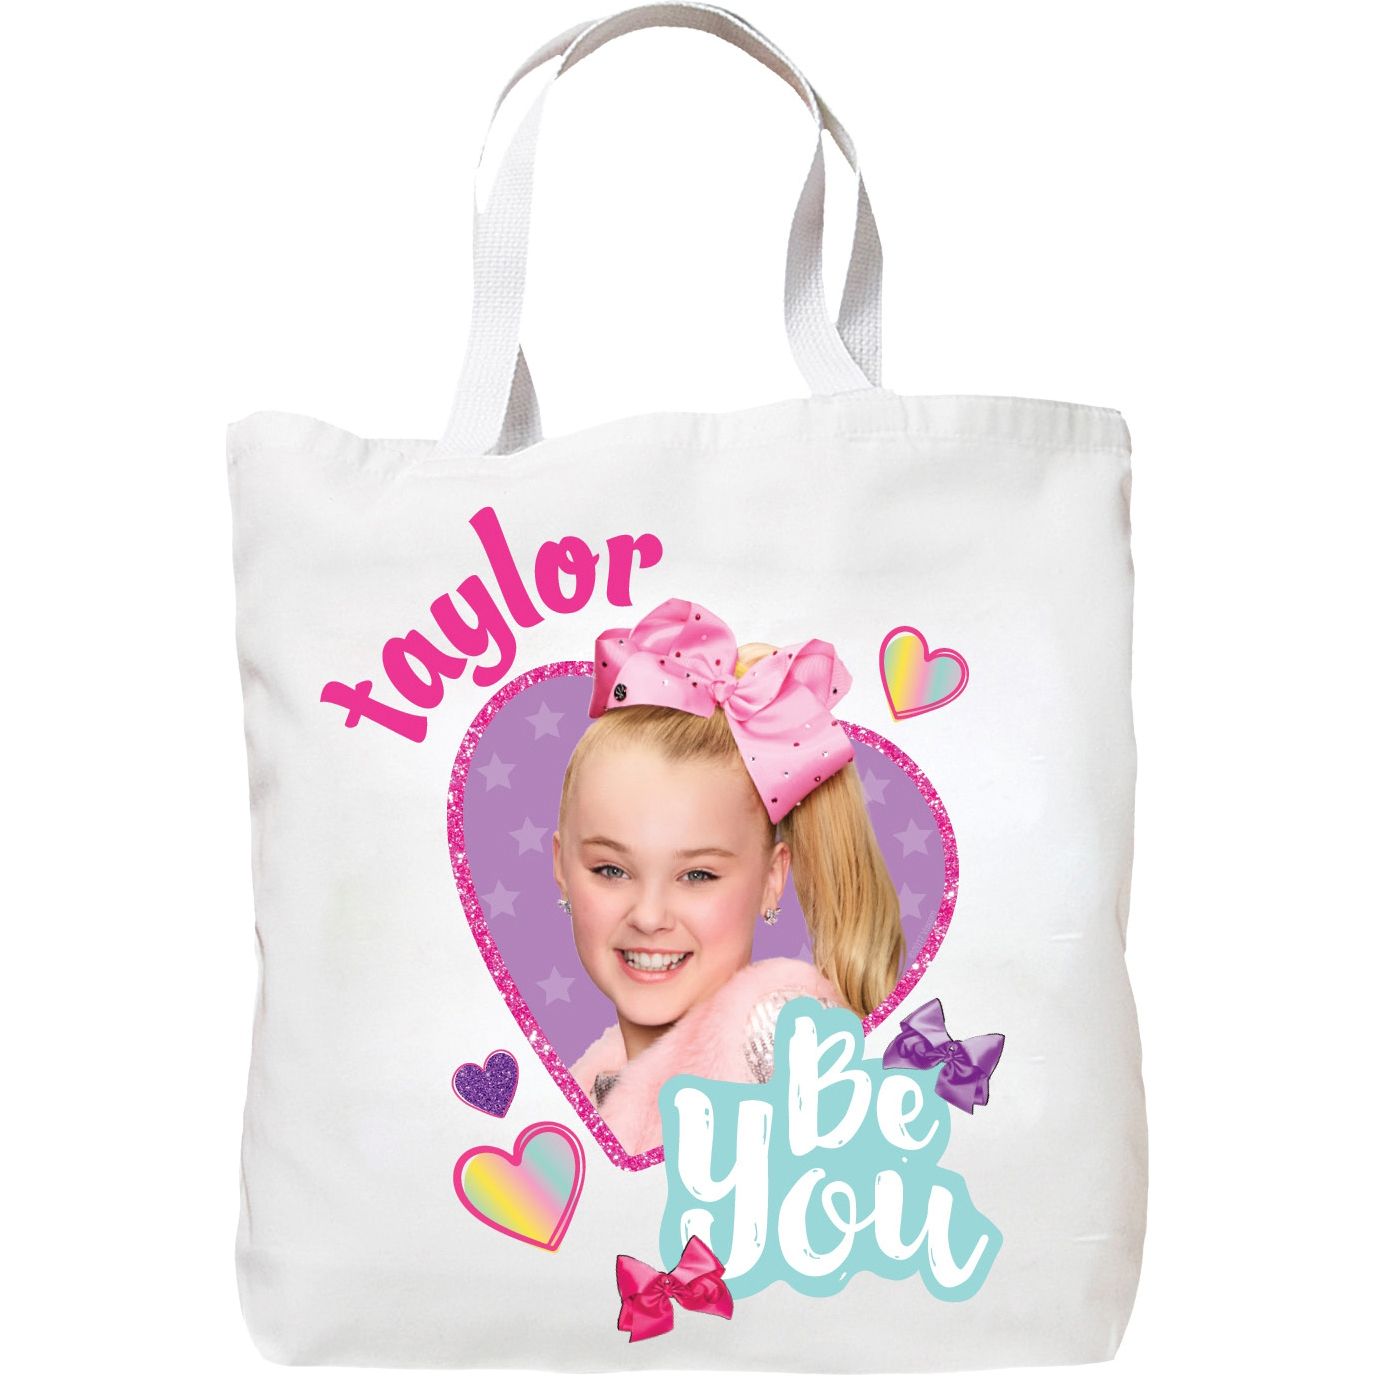 Personalized JoJo Siwa Be You Tote Bag